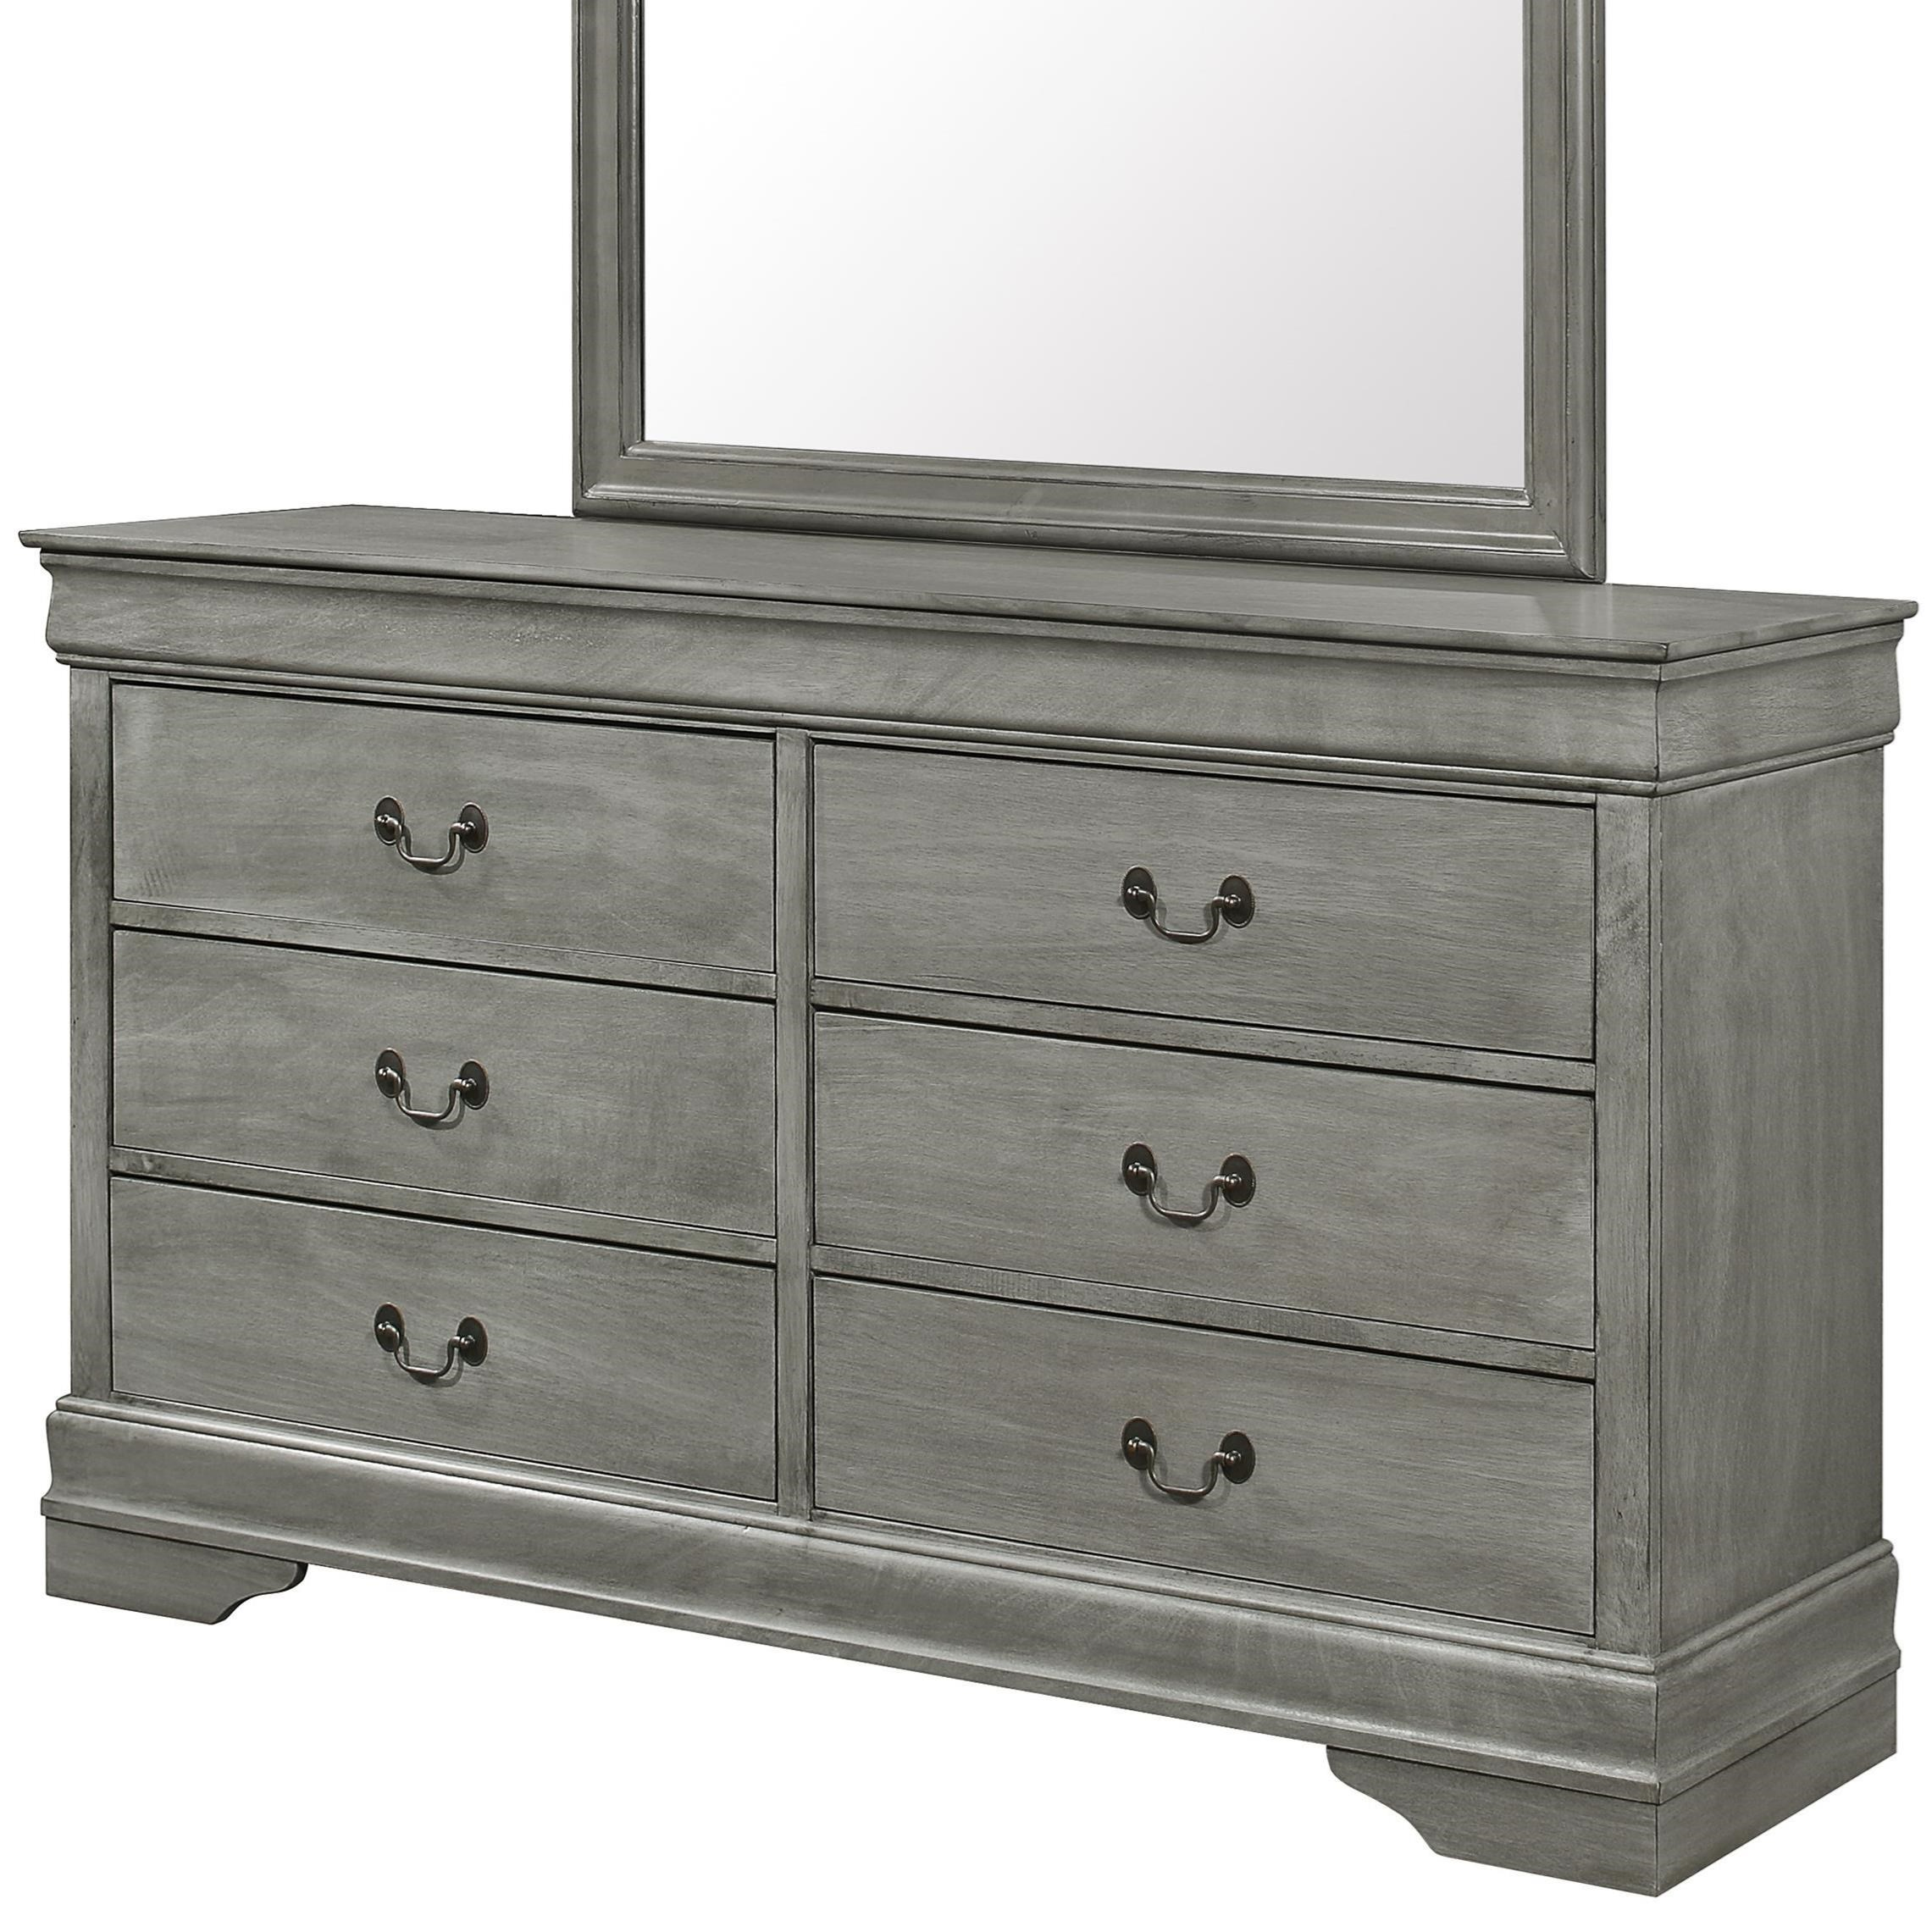 Louis Philip 6 Drawer Dresser by Crown Mark at Northeast Factory Direct